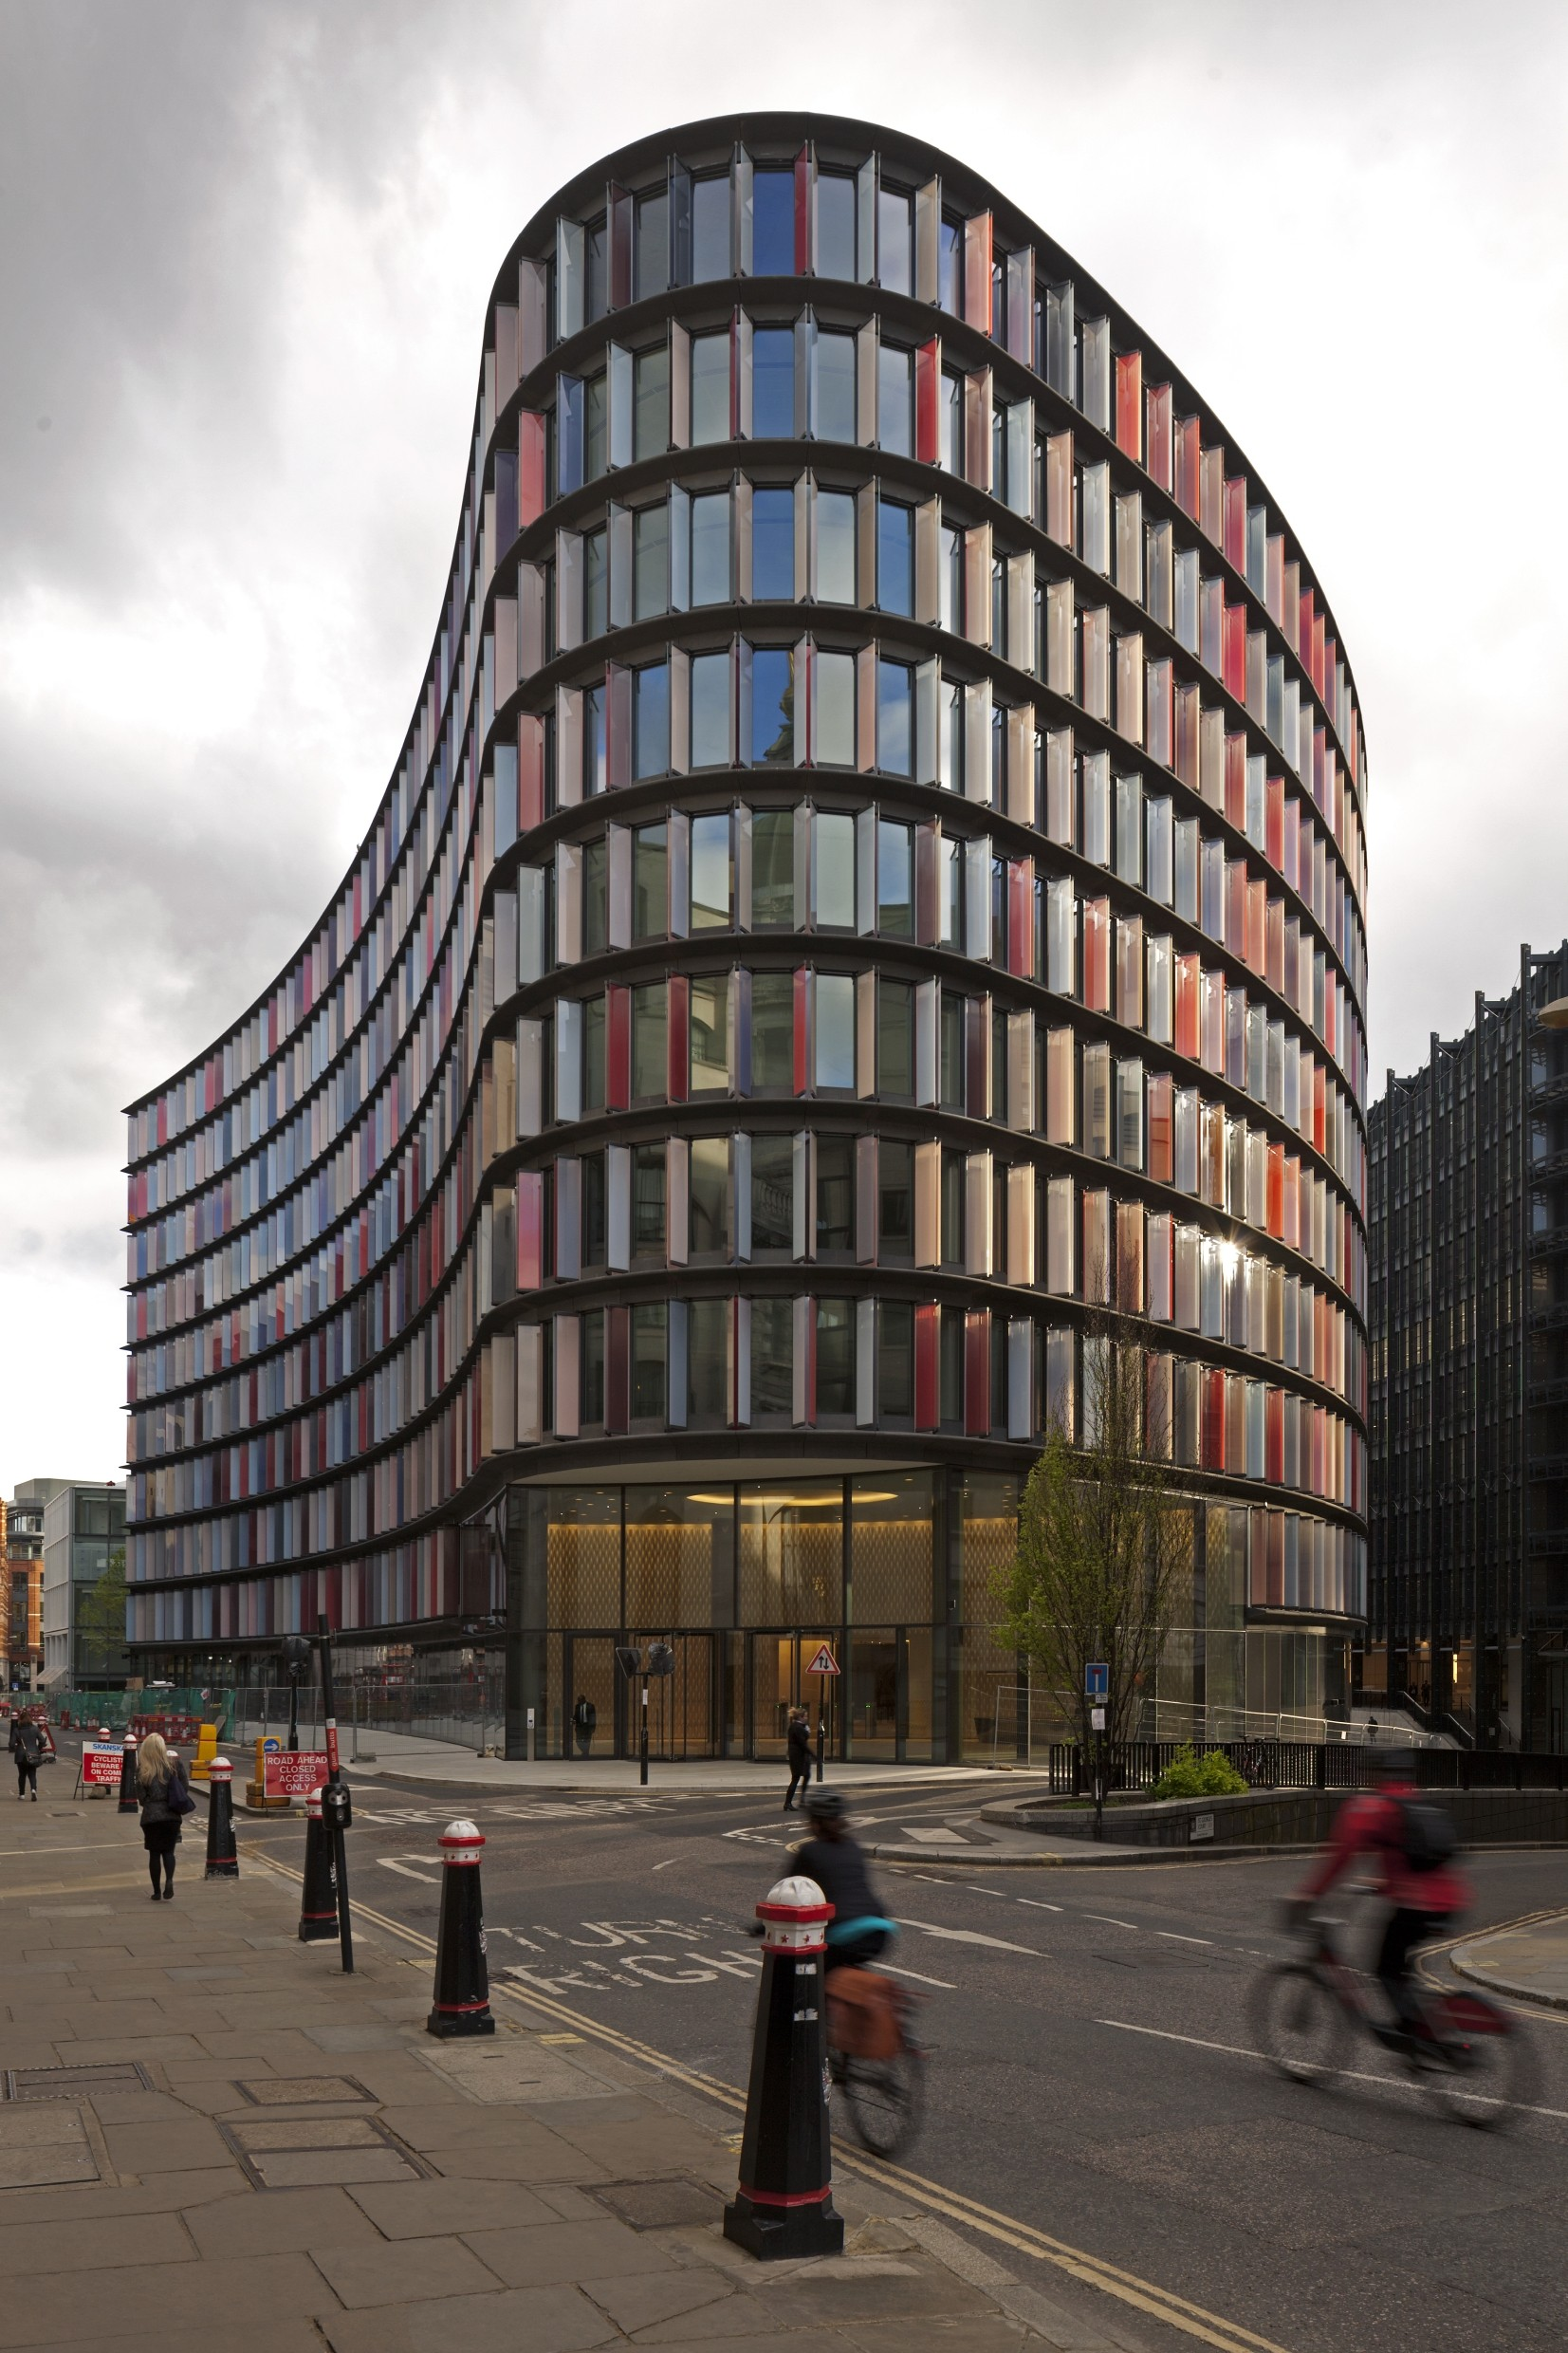 sauerbruch hutton office archdaily new ludgate fletcher priest architects sauerbruch hutton architects copy jan bitter